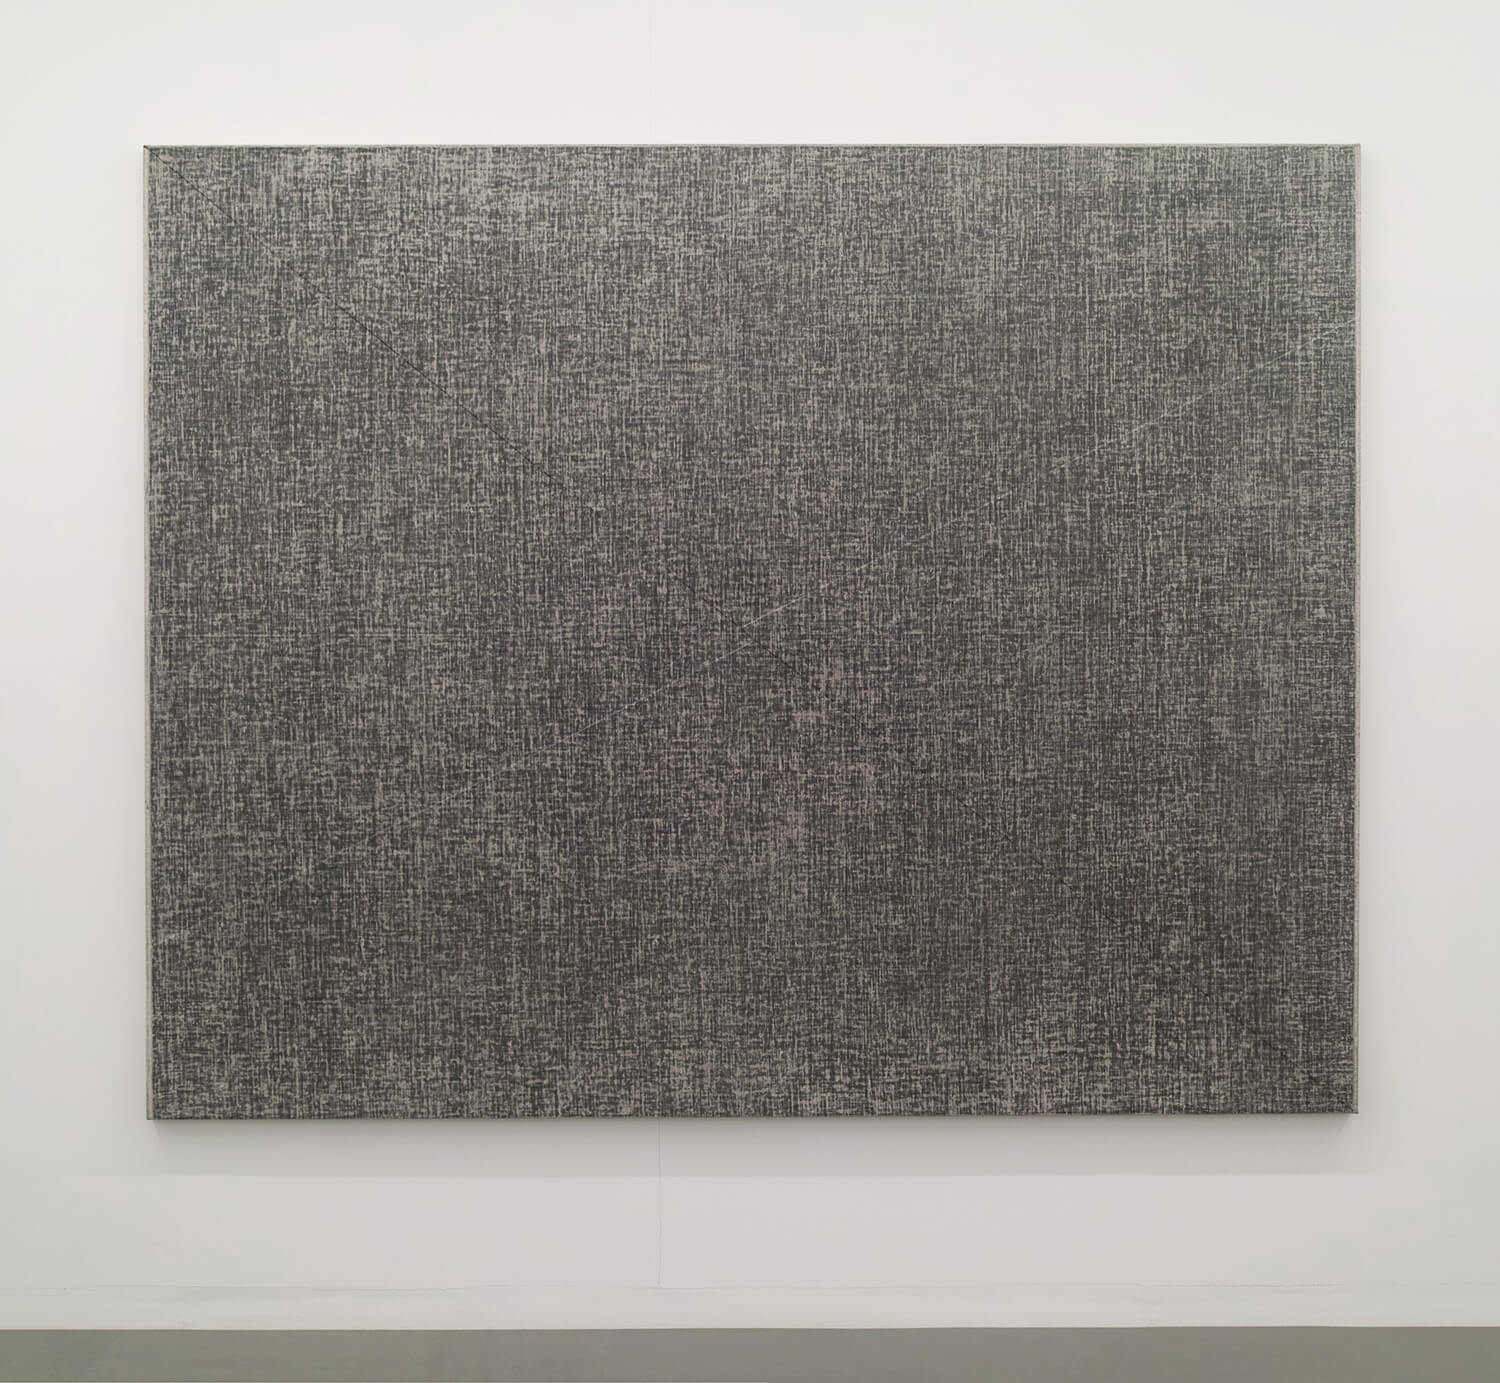 Drawing by drawing, Oil, crayon, chalk on canvas, 182 x 227 cm, 1979